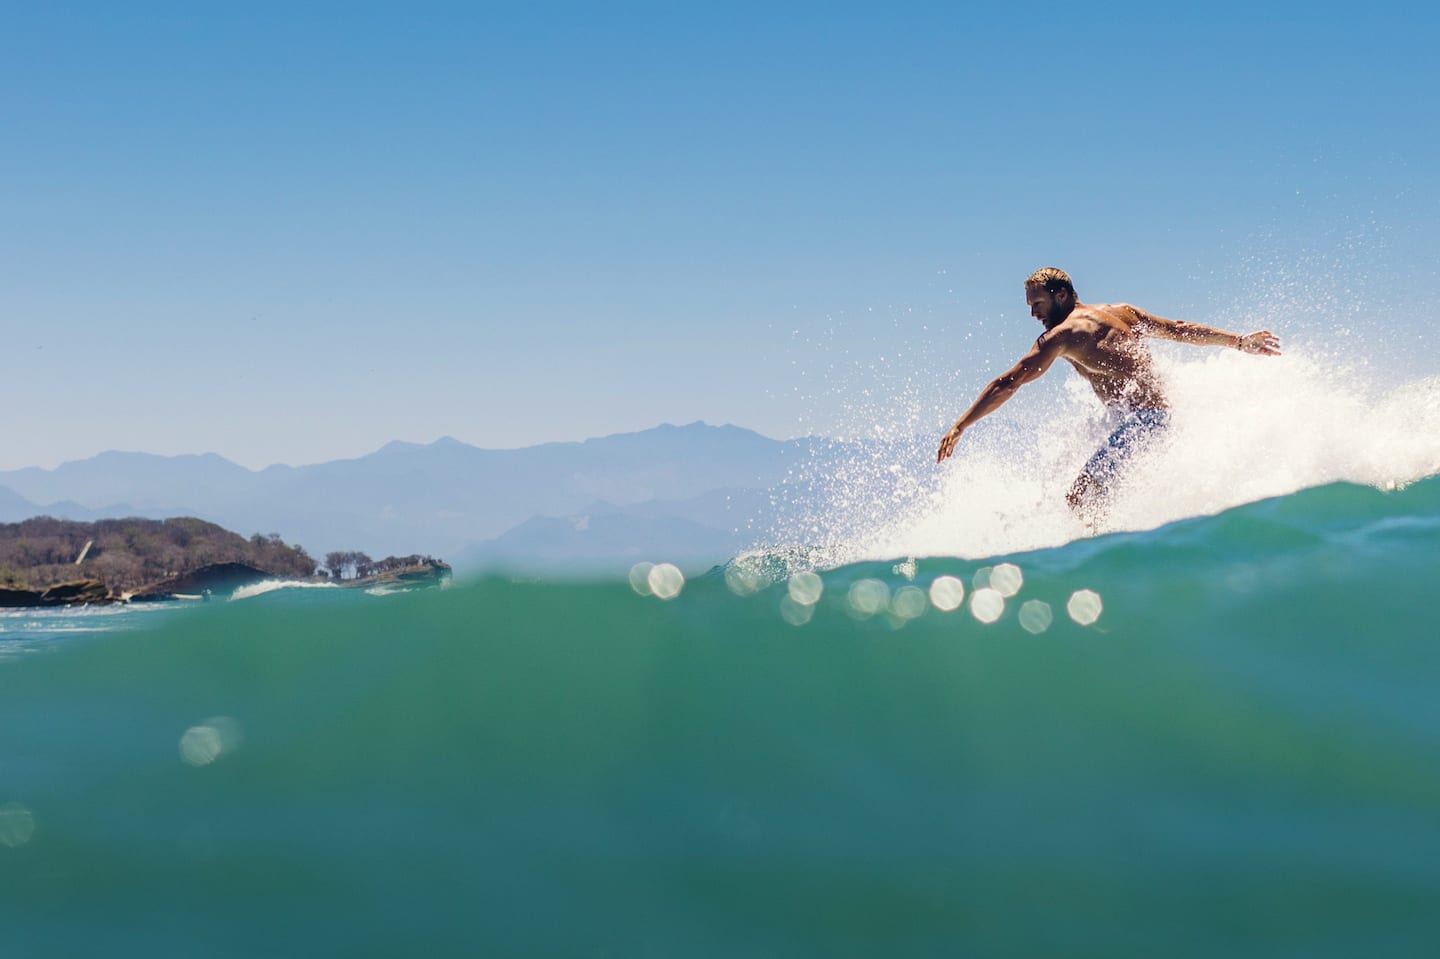 Los Angeles – surferski doživljaji%{line_break}i još mnogo toga